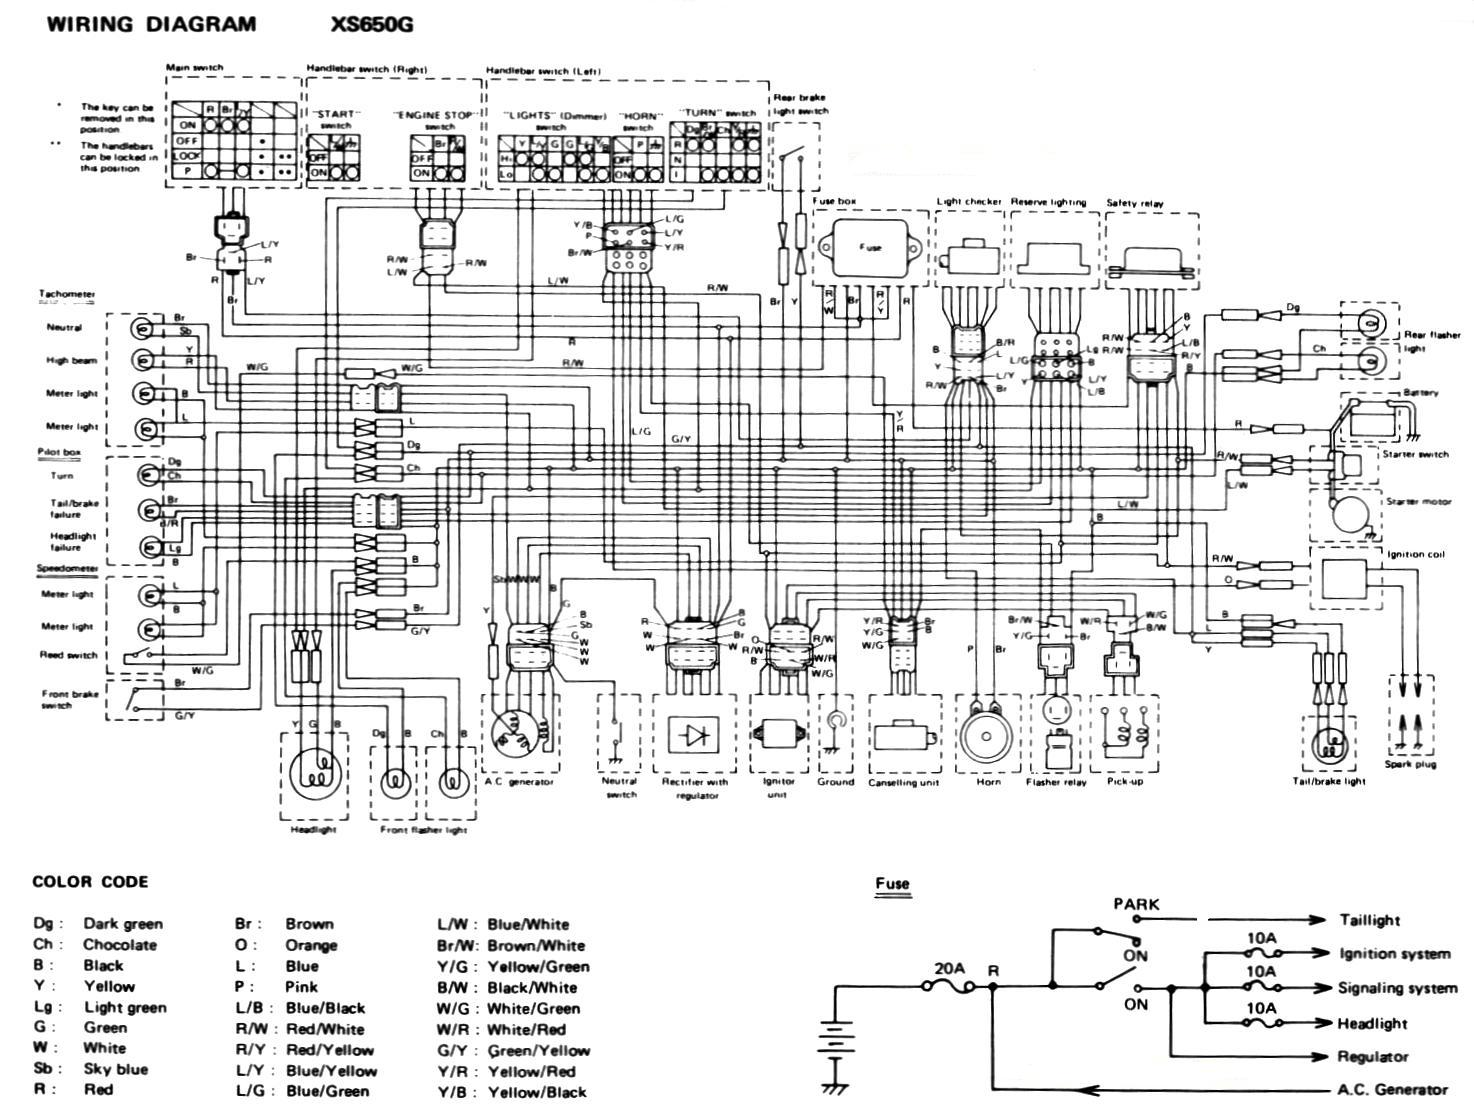 80XS650G wiring diagrams 1980 Kawasaki KZ750 Wiring-Diagram at webbmarketing.co